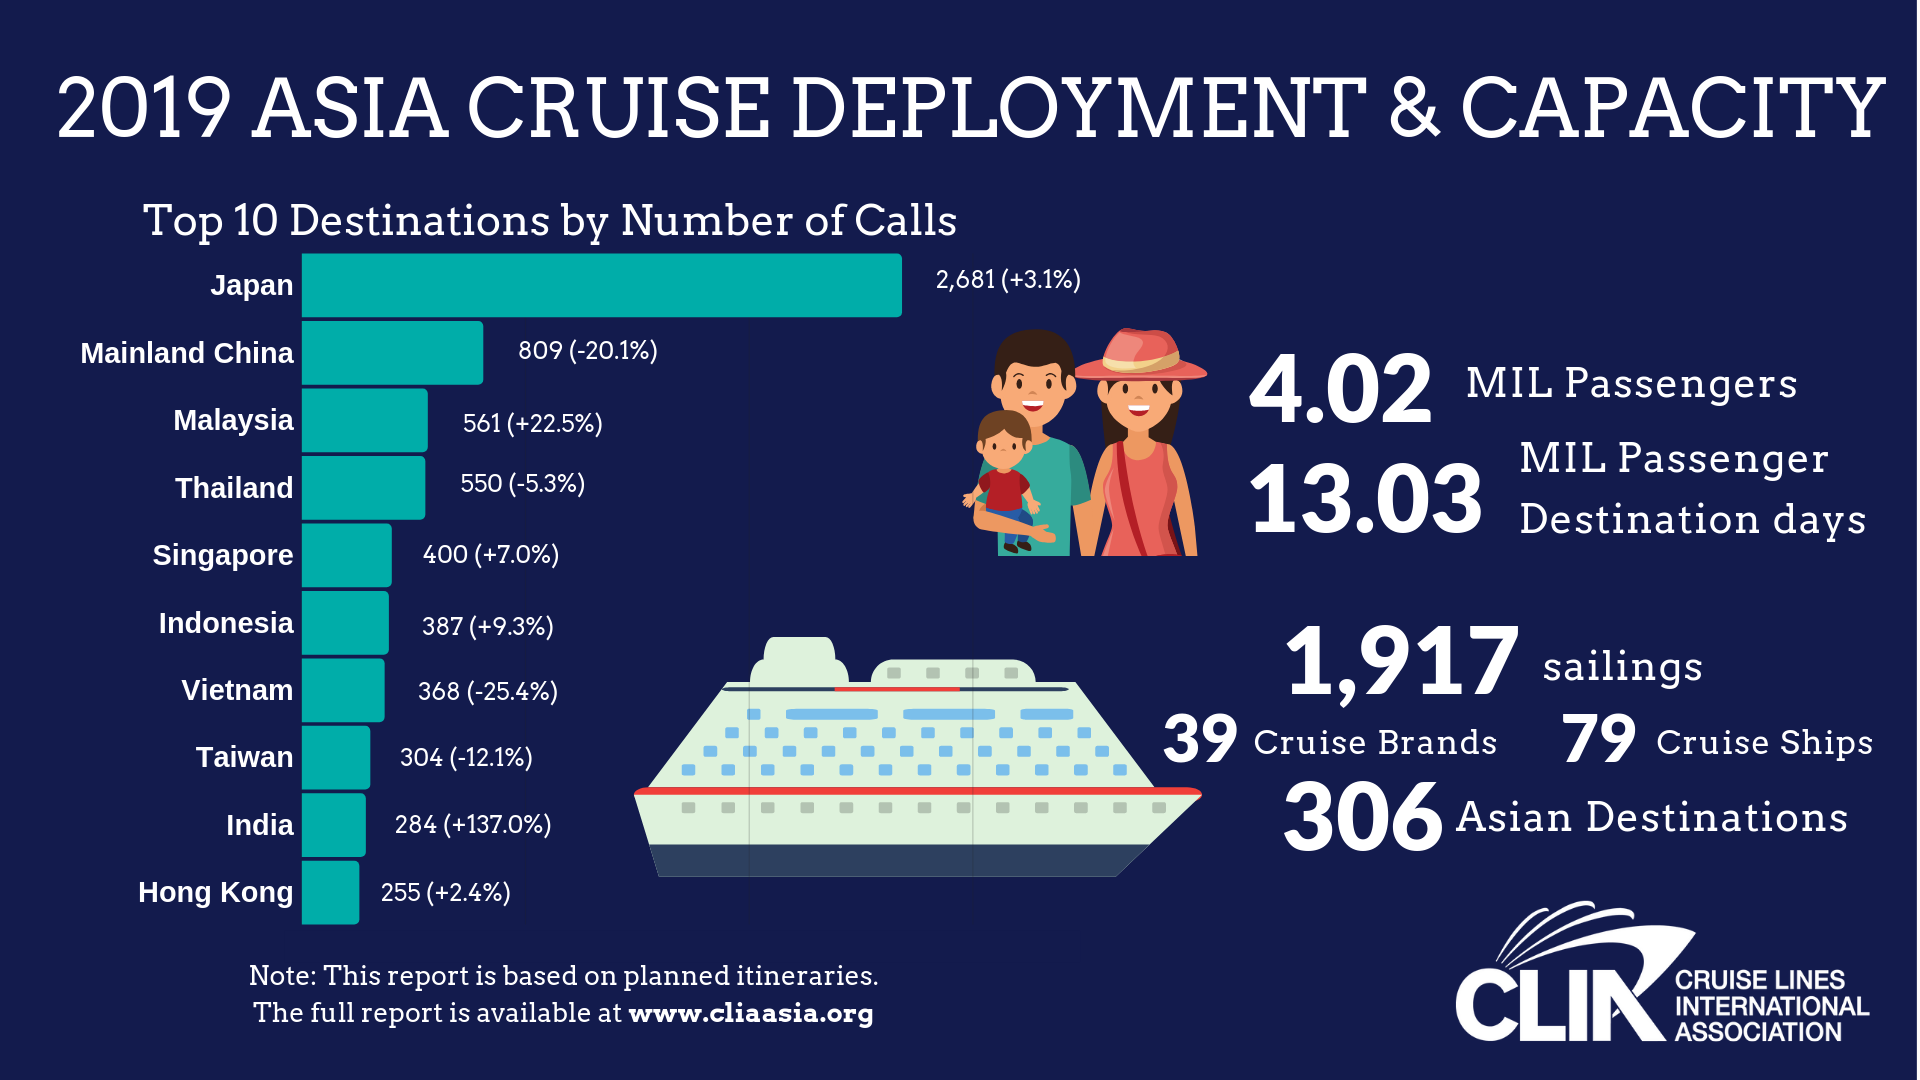 CLIA's 2019 Asia Deployment Report shows more cruise destinations in Asia